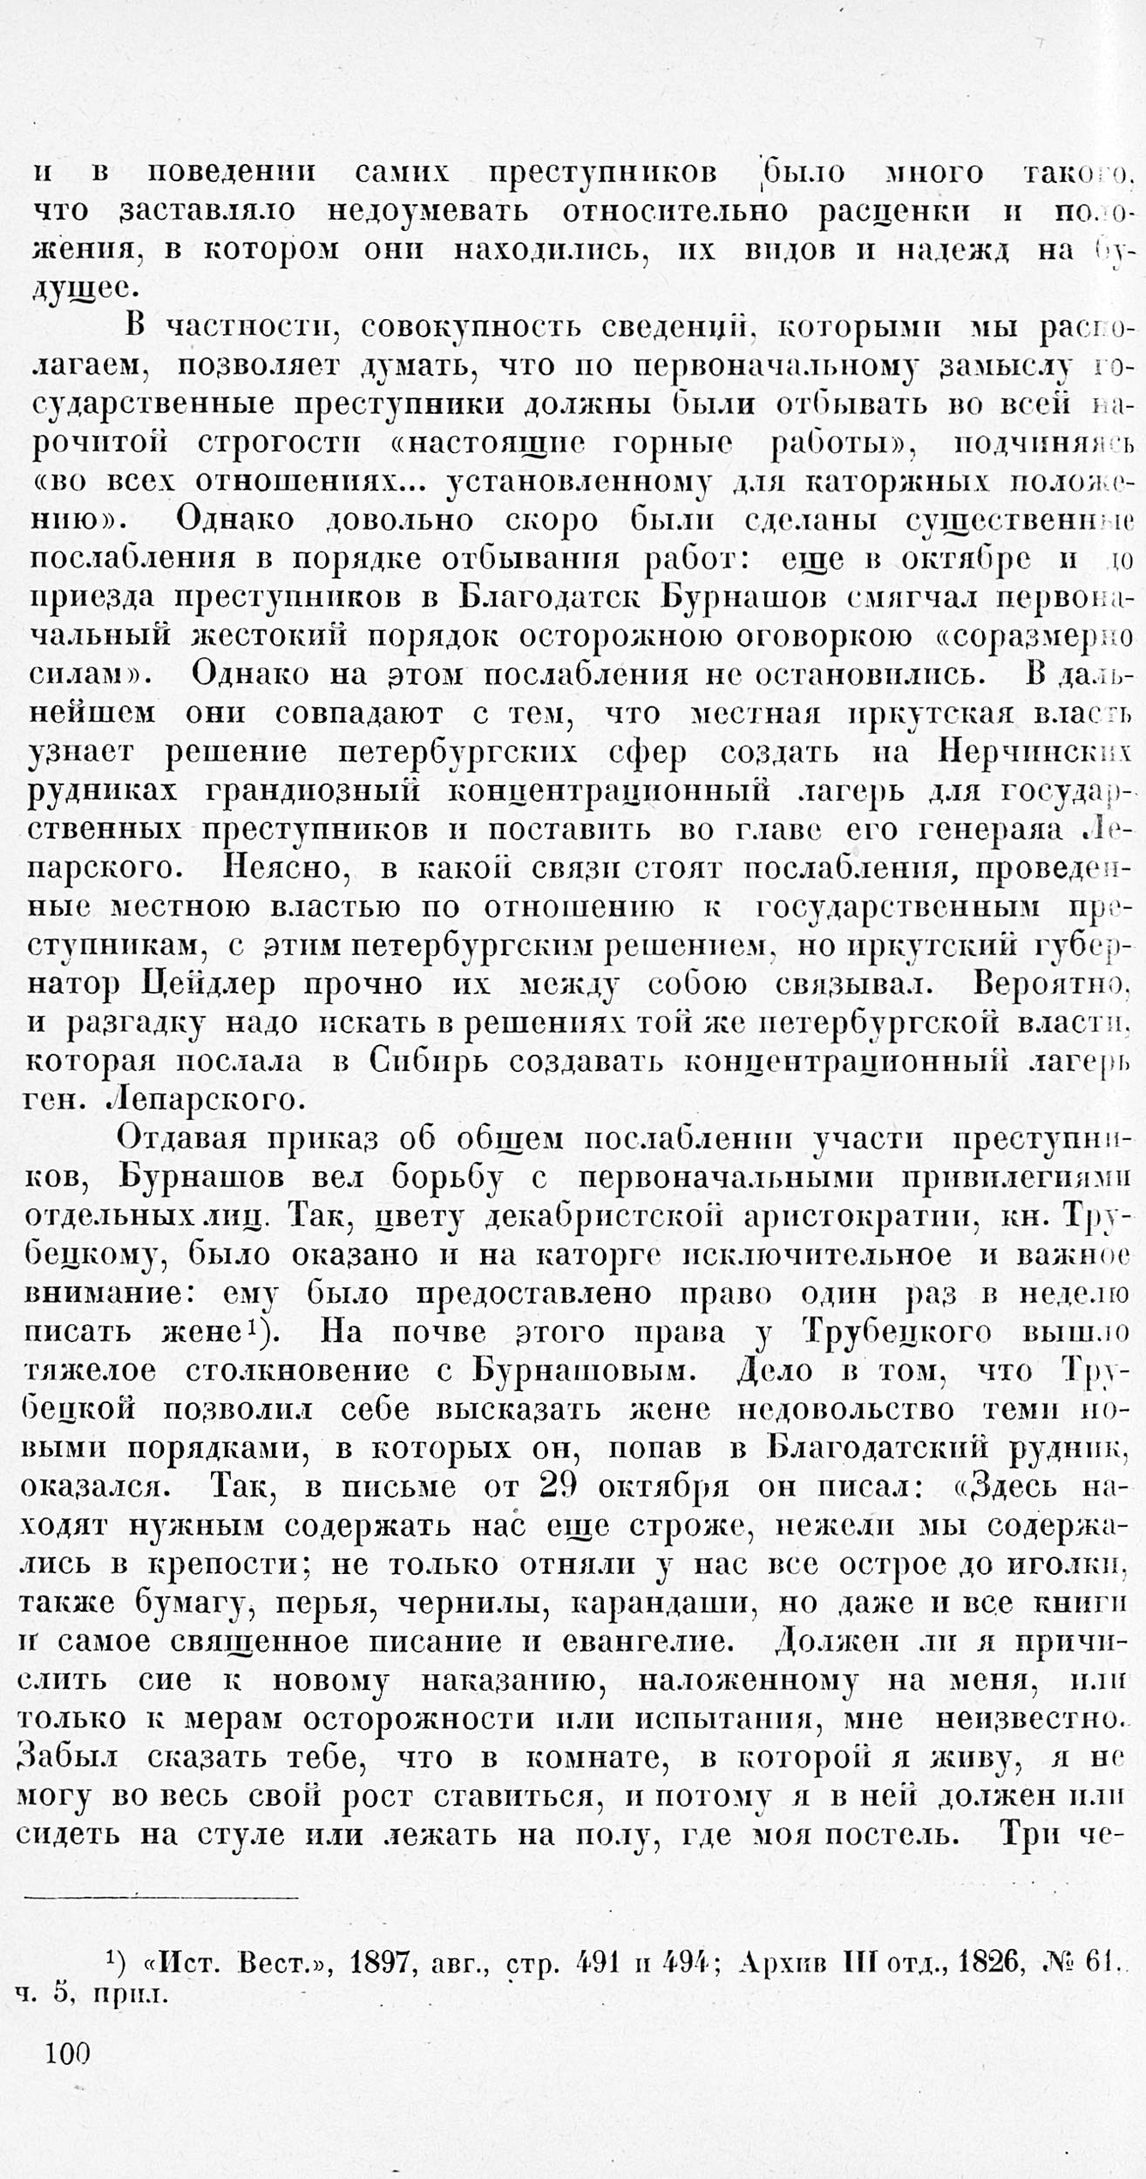 http://elib.shpl.ru/pages/649981/zooms/7